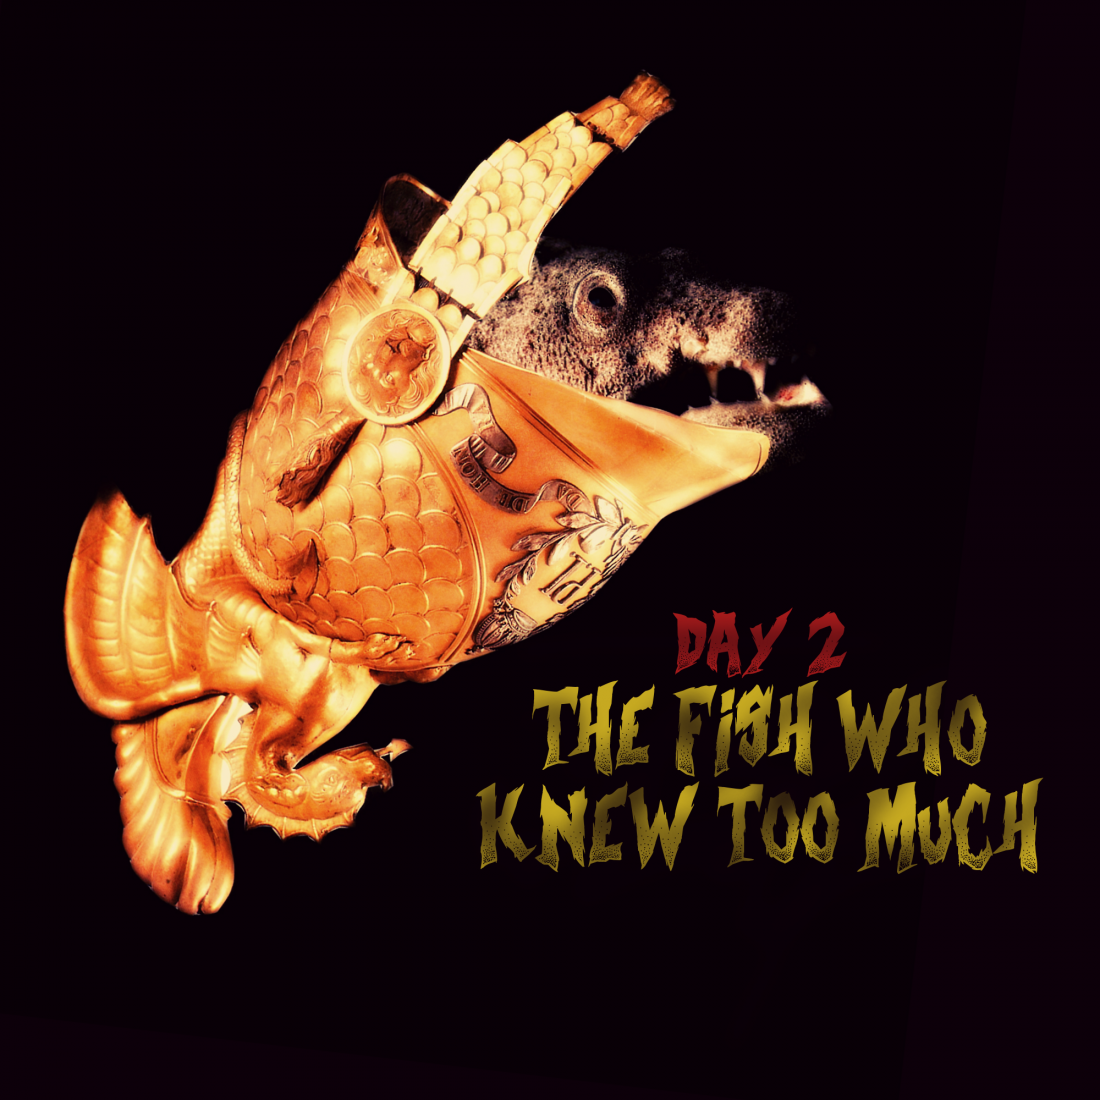 drawlloween-2-the-fish-who-knew-too-much